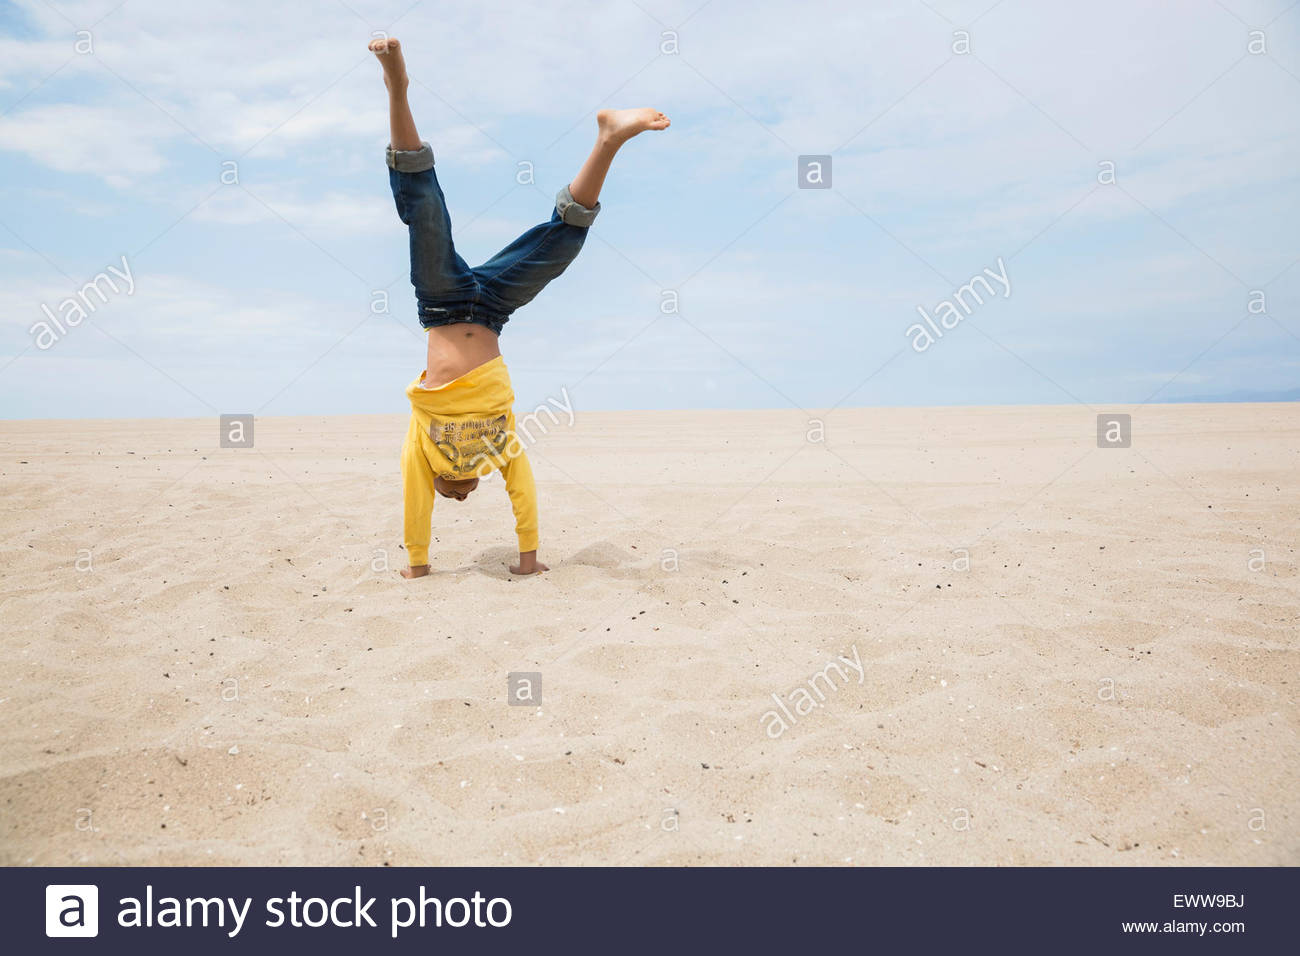 Boy doing handstand on beach - Stock Image